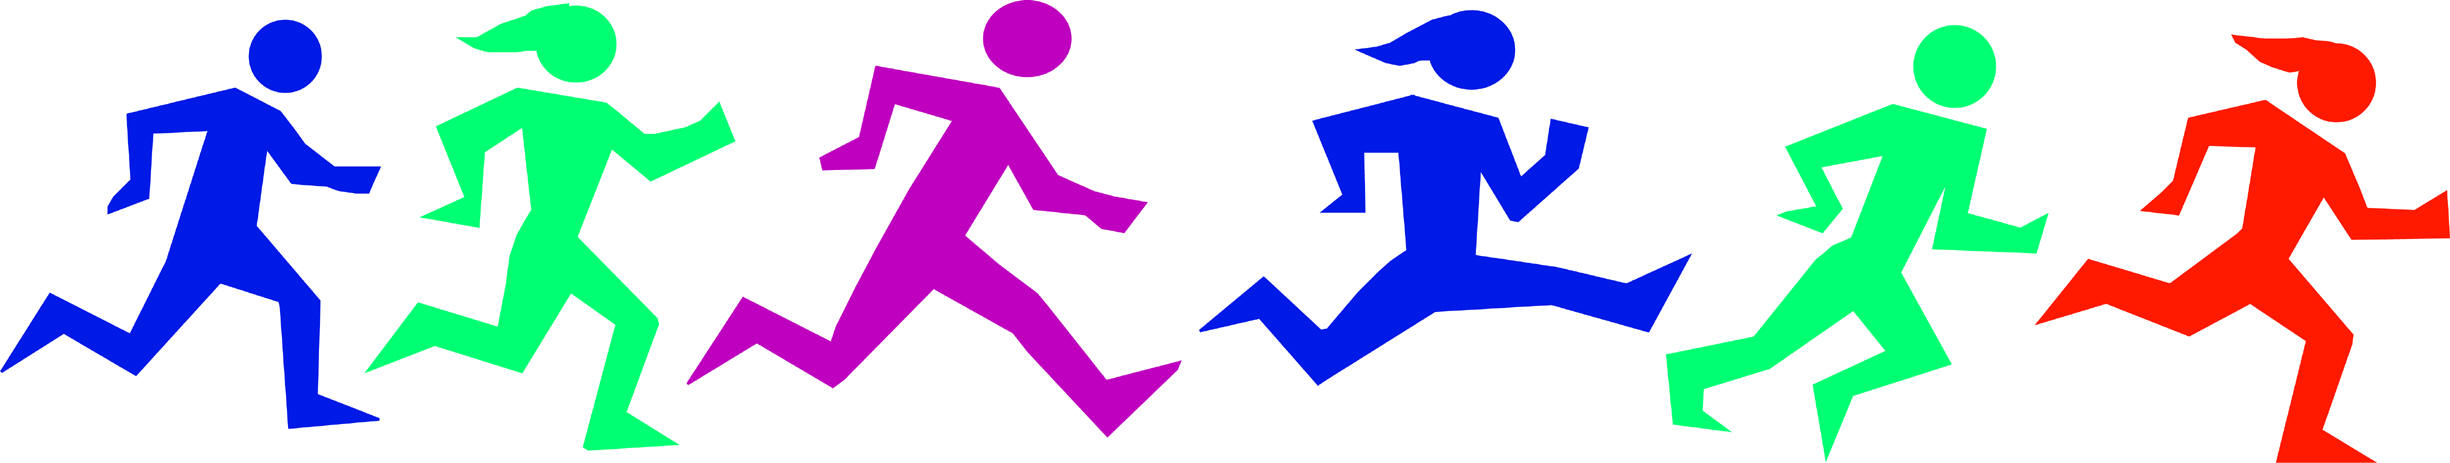 Image result for running clipart